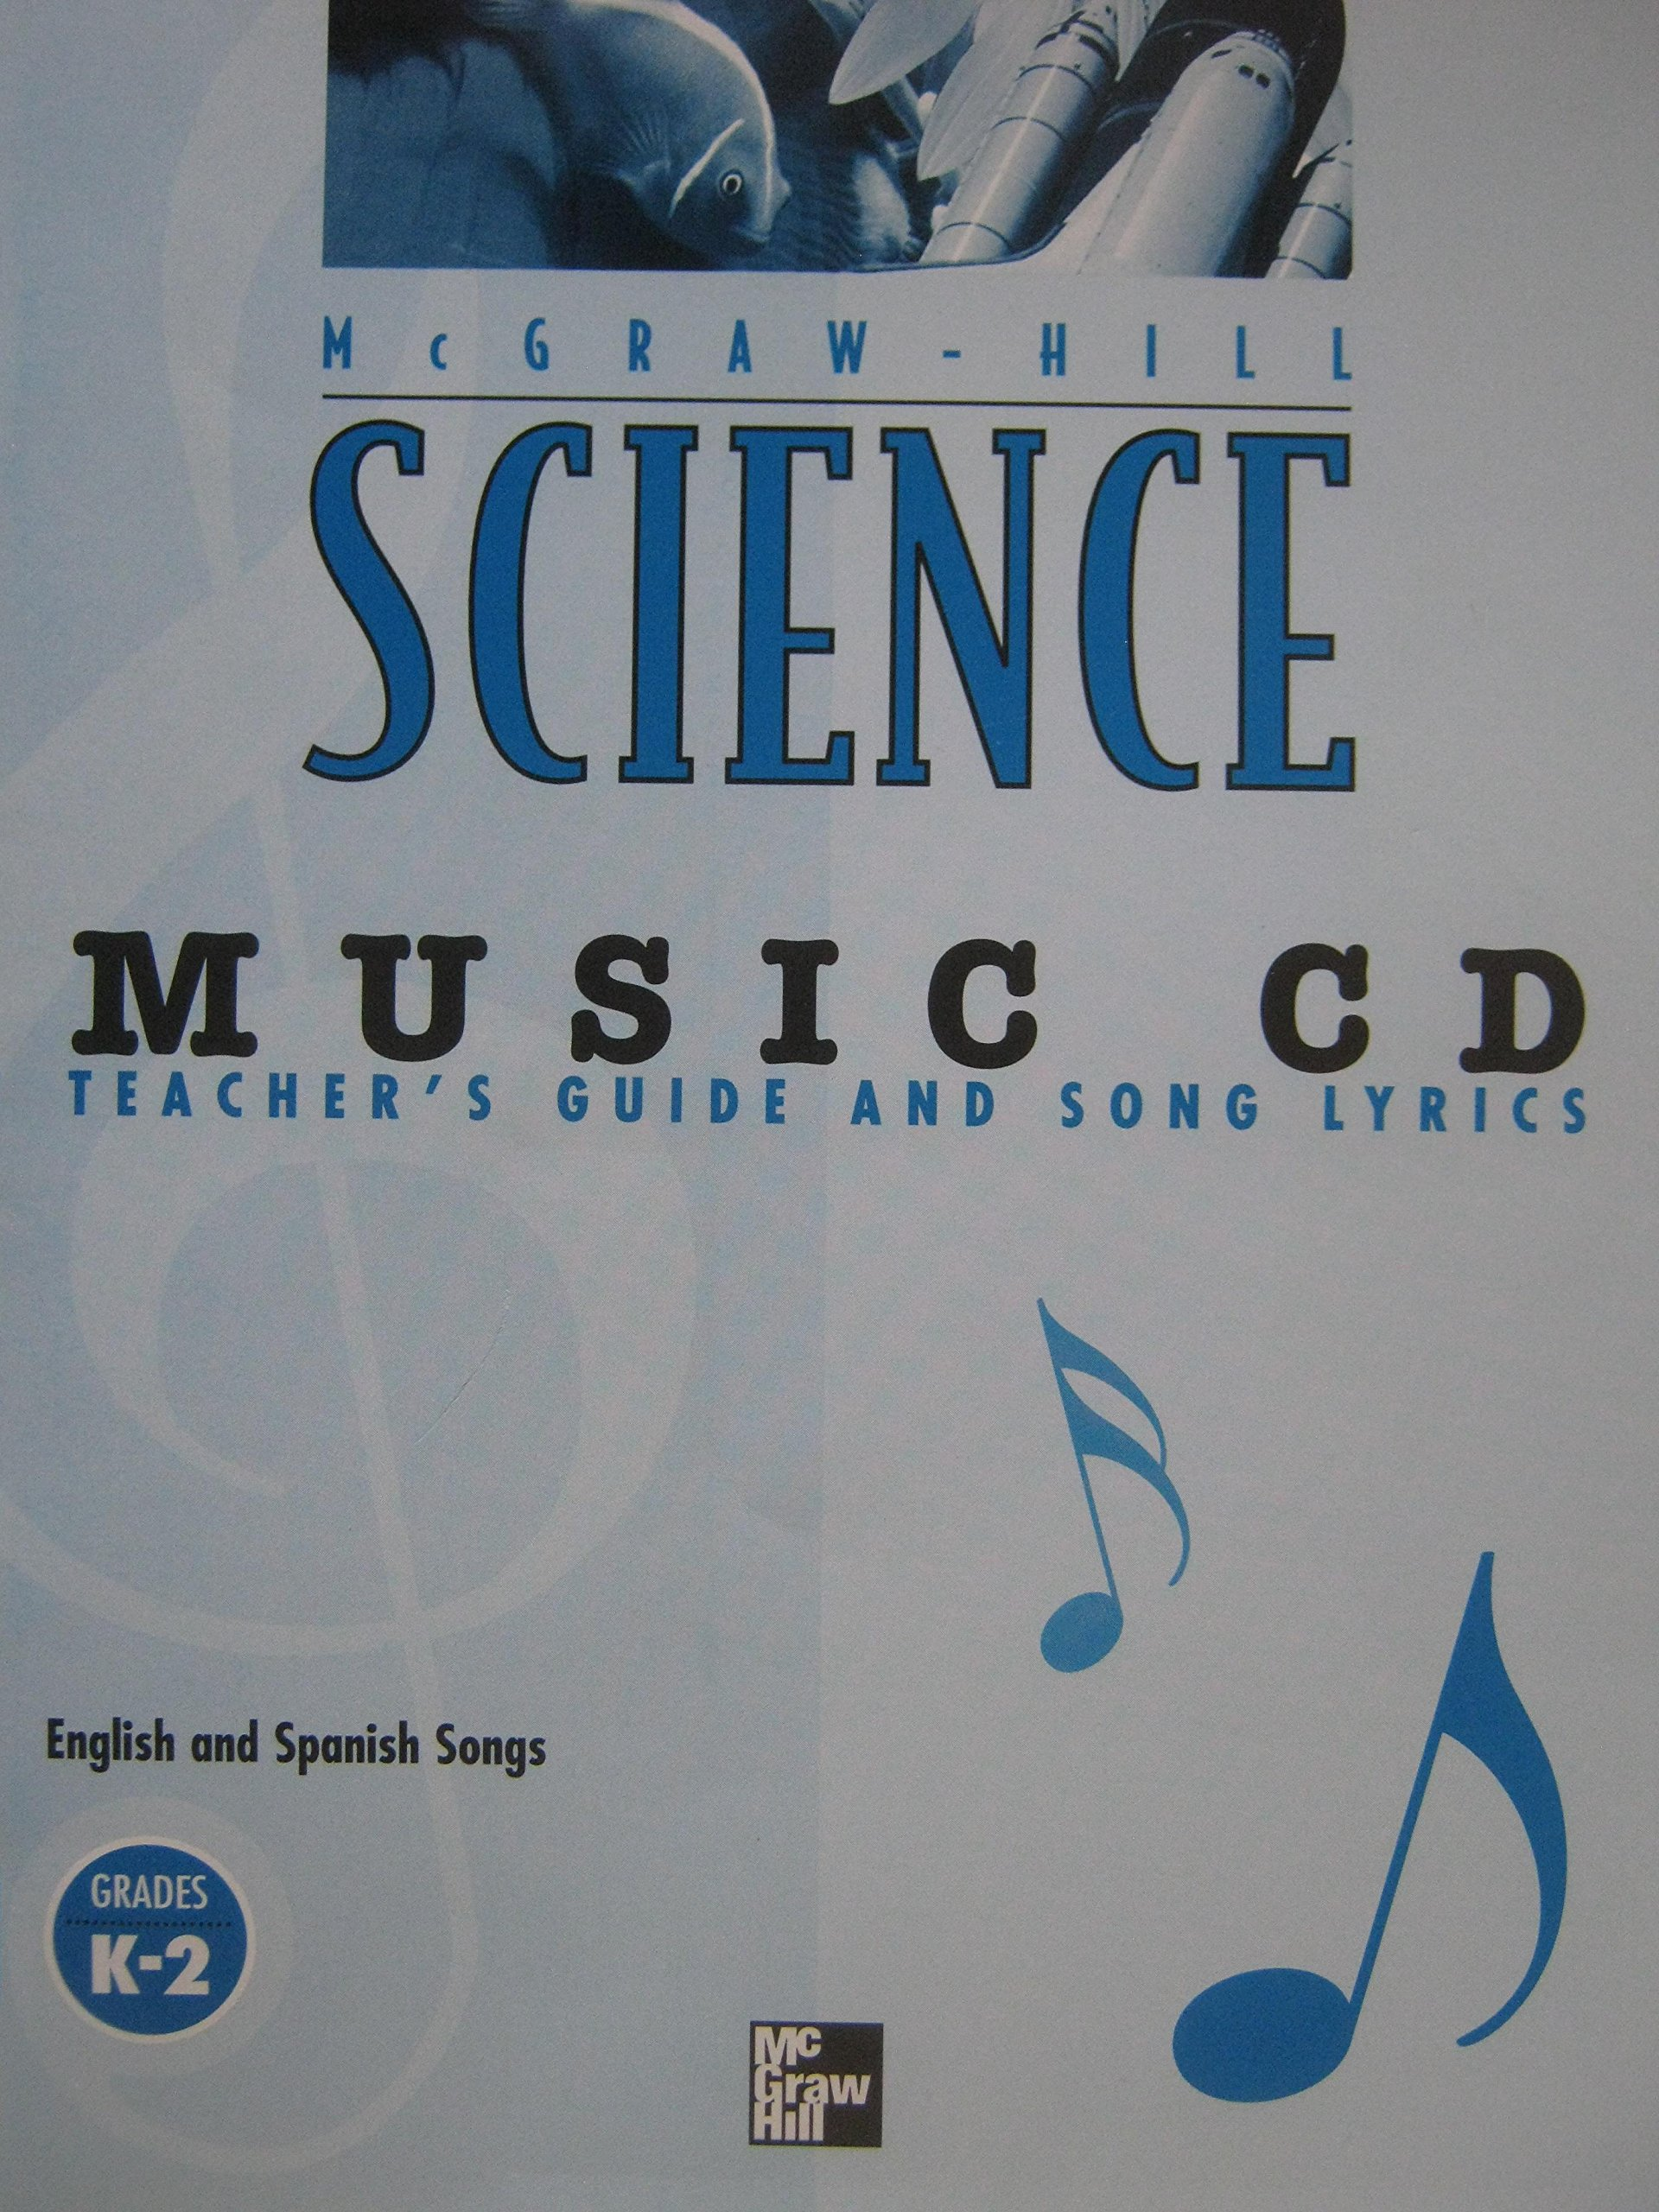 MUSIC CD, with Teacher's Guide and Song Lyrics (McGraw-Hill SCIENCE